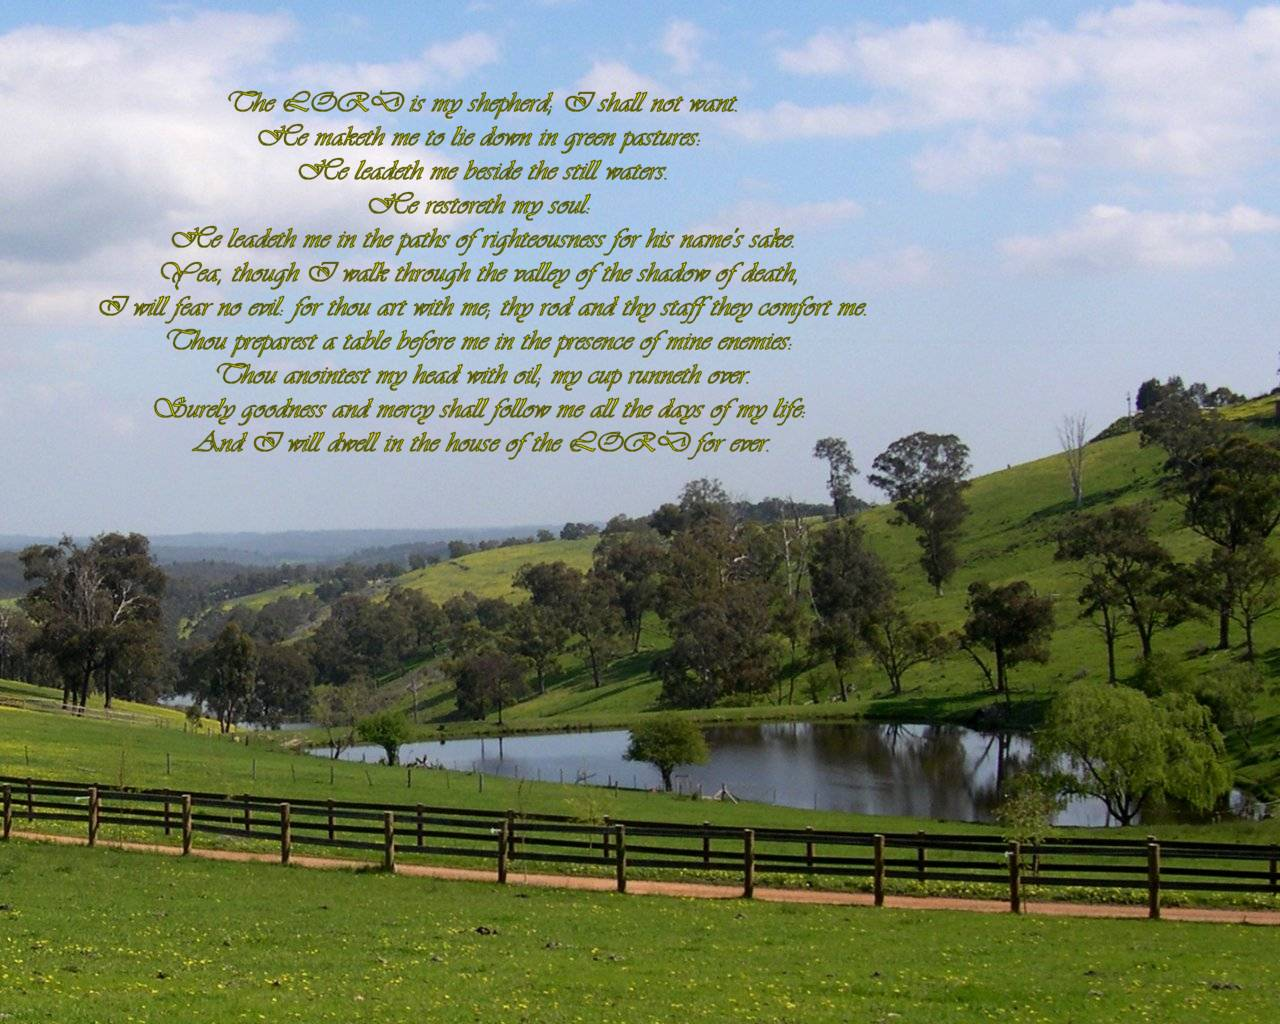 Wallpaper Psalm 23 5 27 10 Pictures 1280x1024